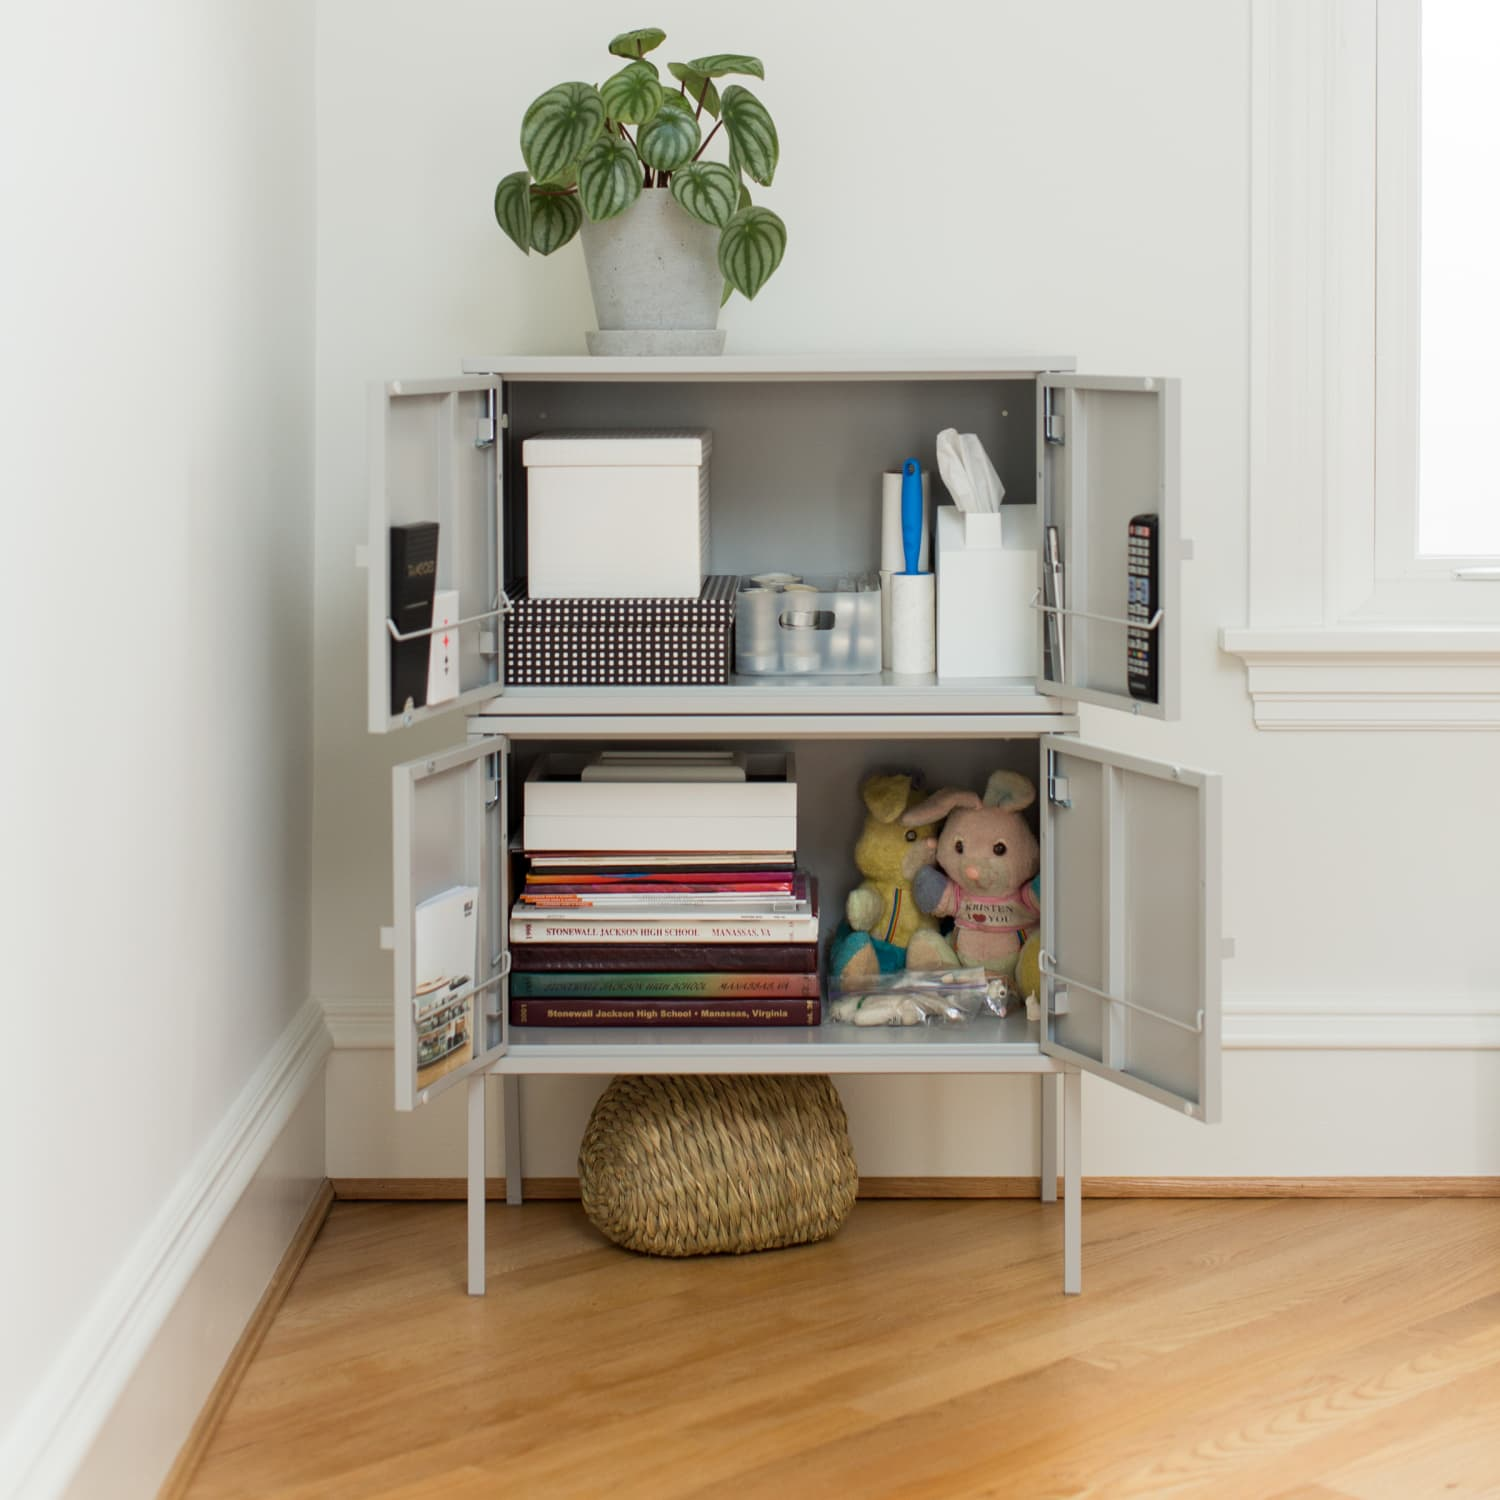 7 Organizing Tips I Learned In My First Week As A Professional Organizer Apartment Therapy